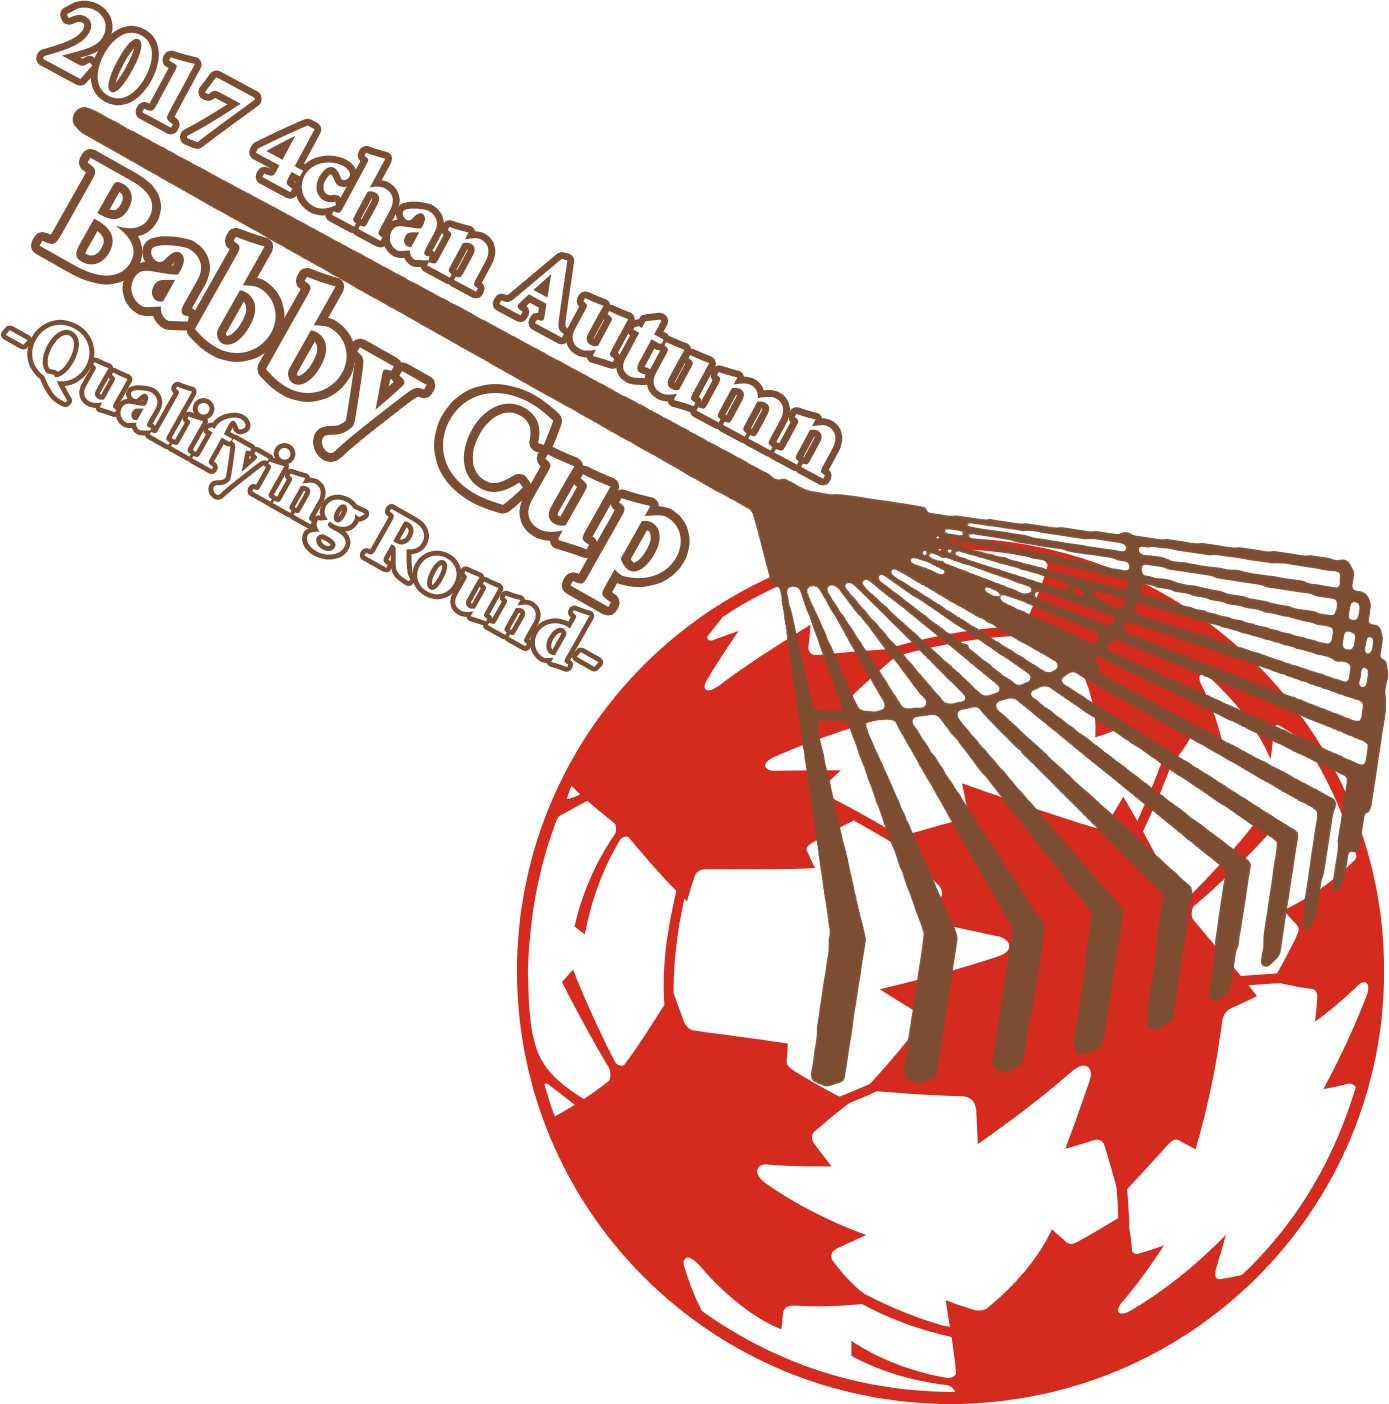 2017 4chan Autumn Babby Cup Qualifiers